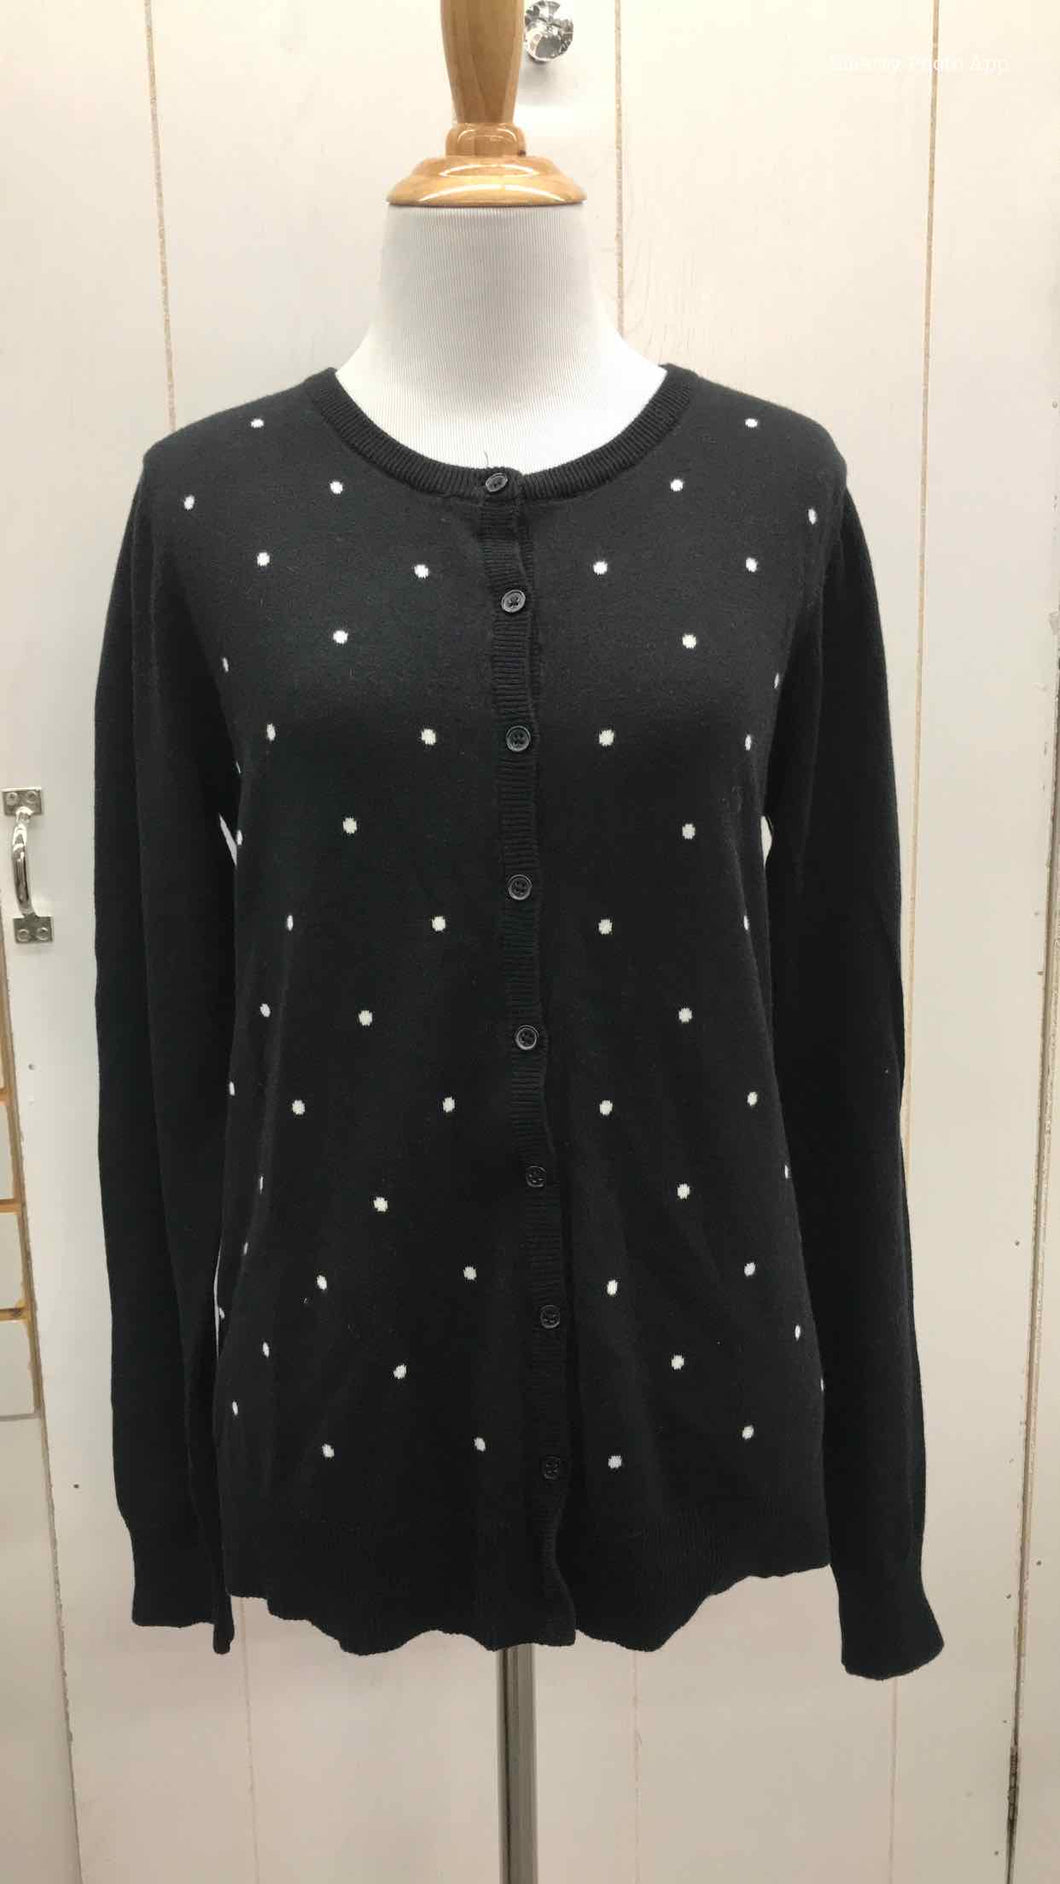 Med Wms Black/White Dot Cardigan